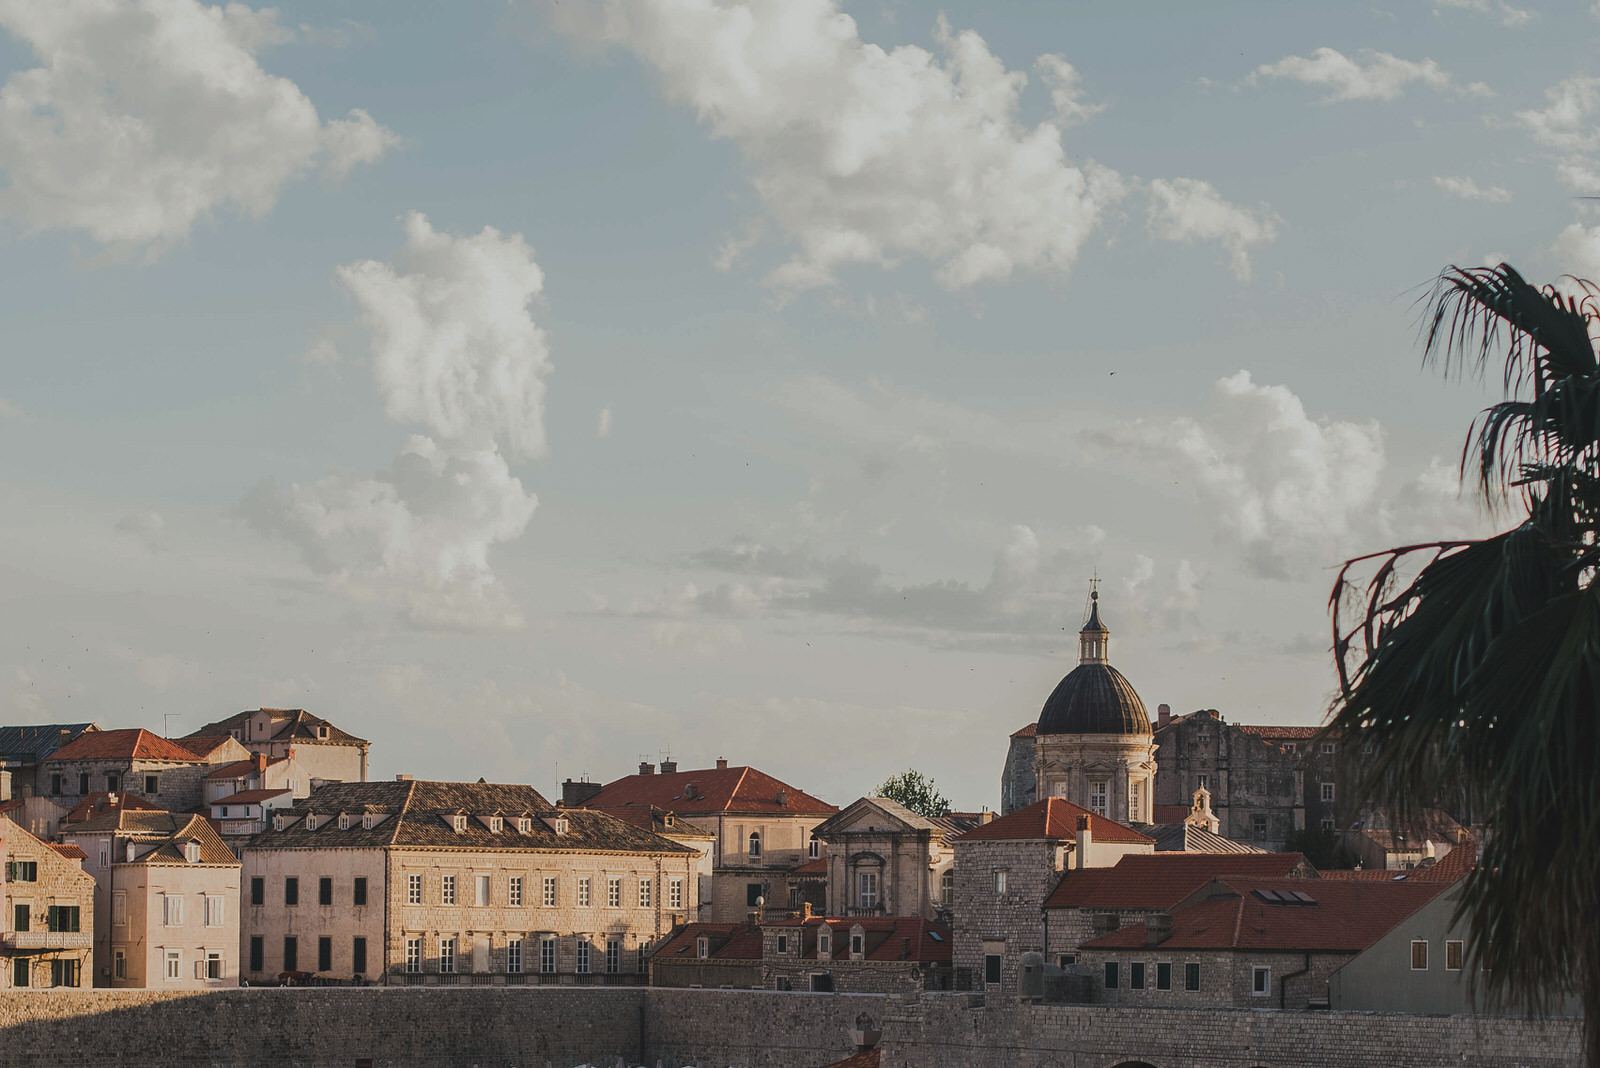 The roof of St. Vlaho Cathedral in Dubrovnik